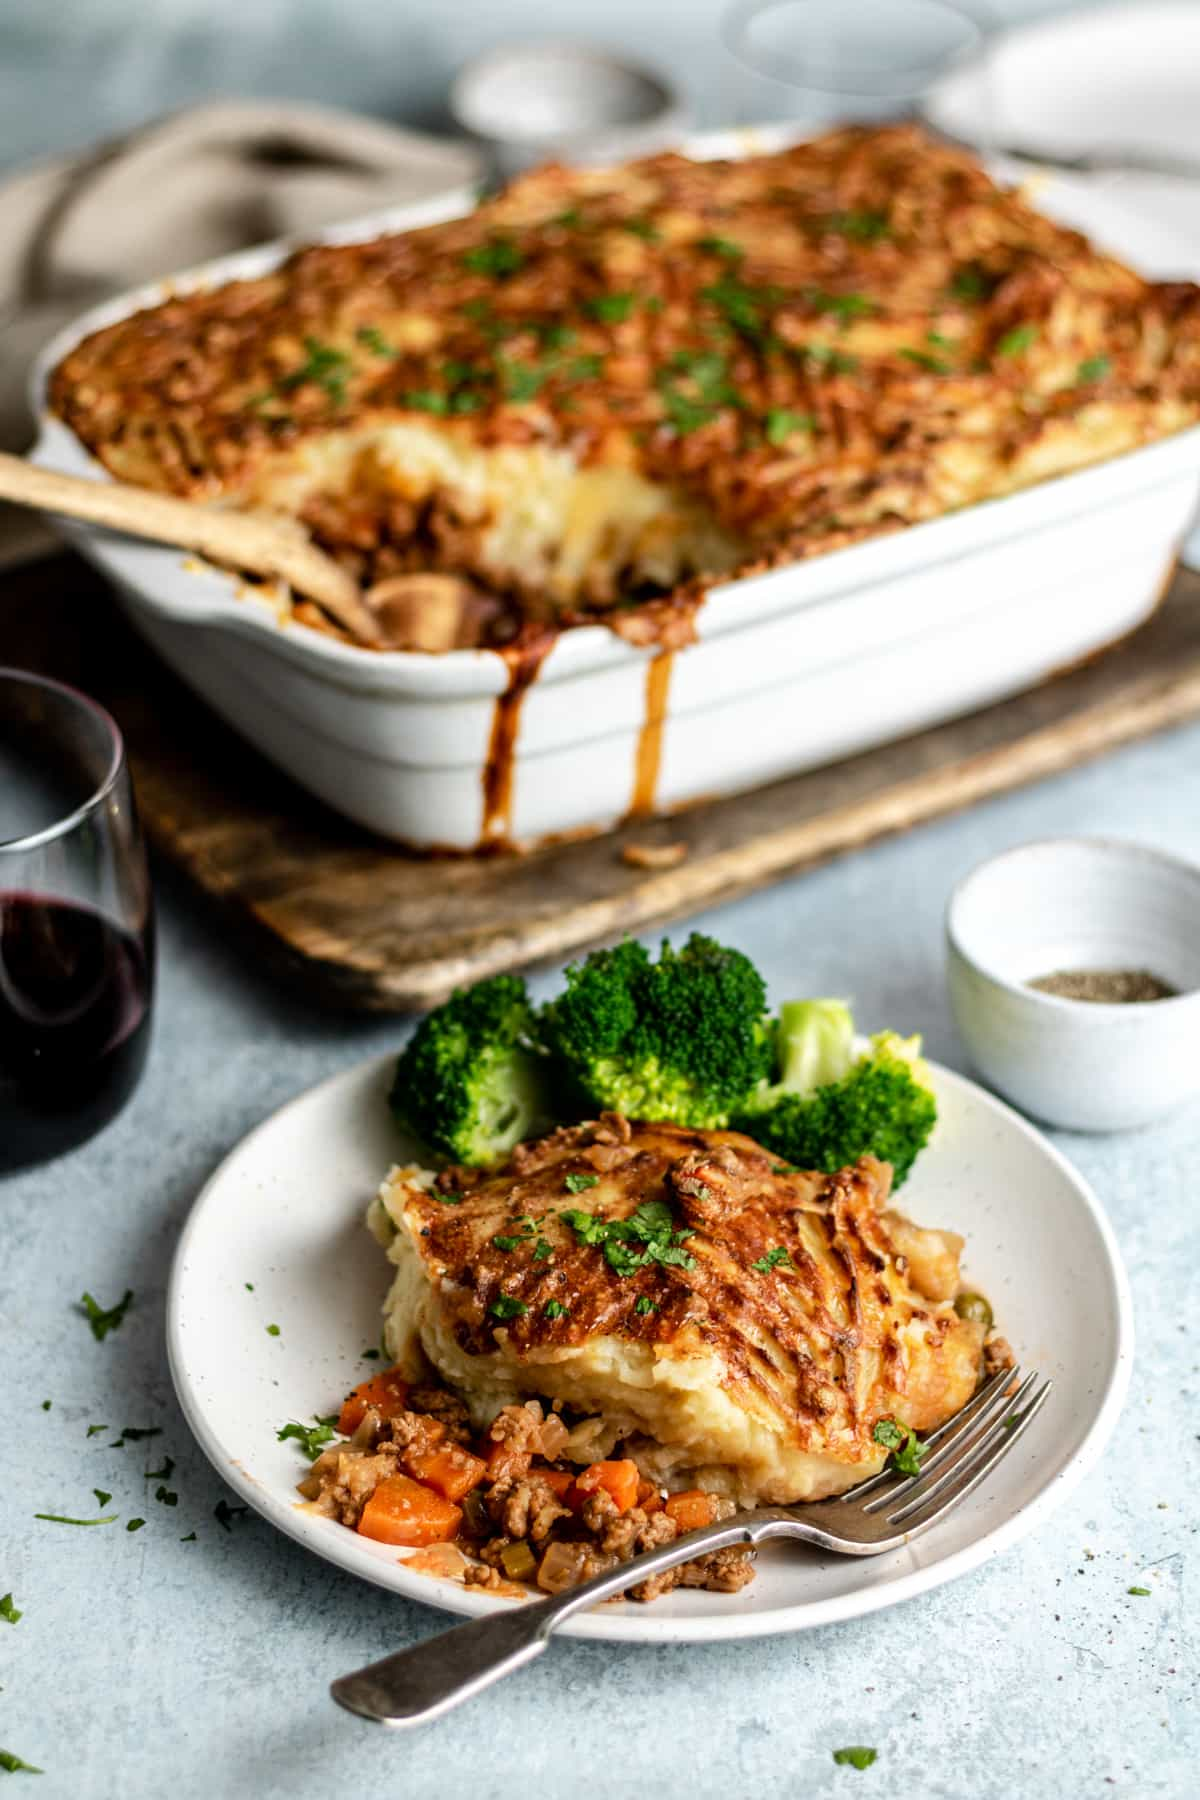 Quorn Cottage Pie with cheesy potato topping plated with broccoli.